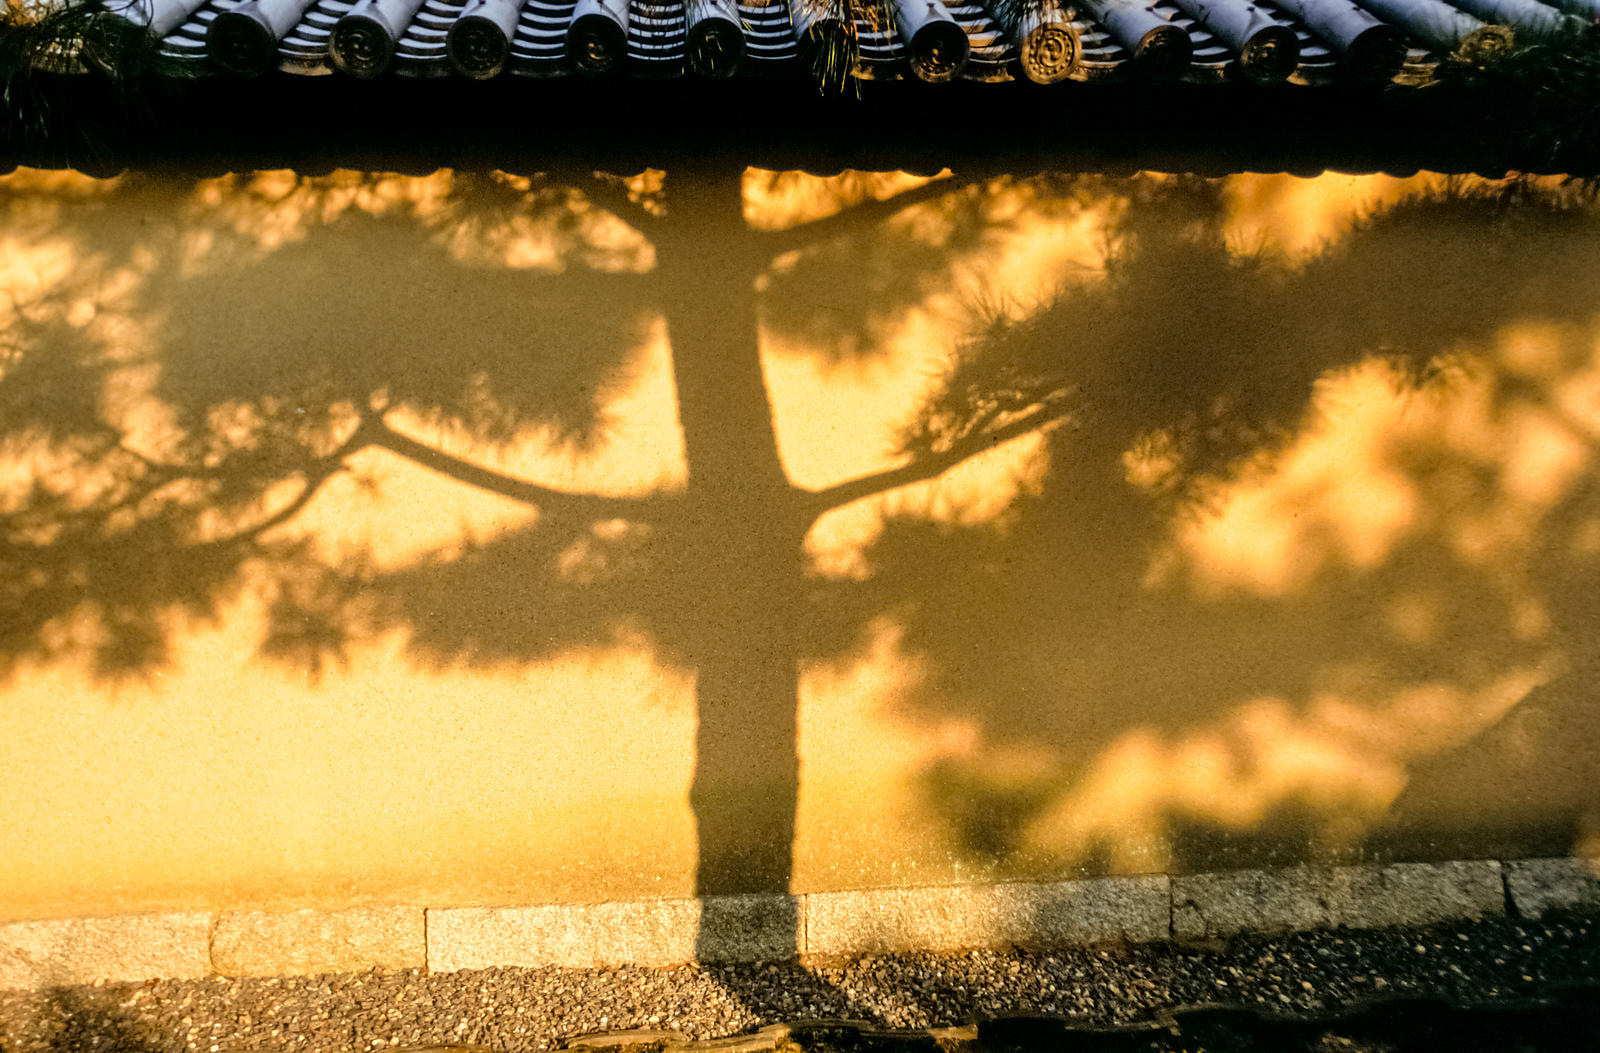 The shadow of a tree at the Daisen-In temple in Kyoto